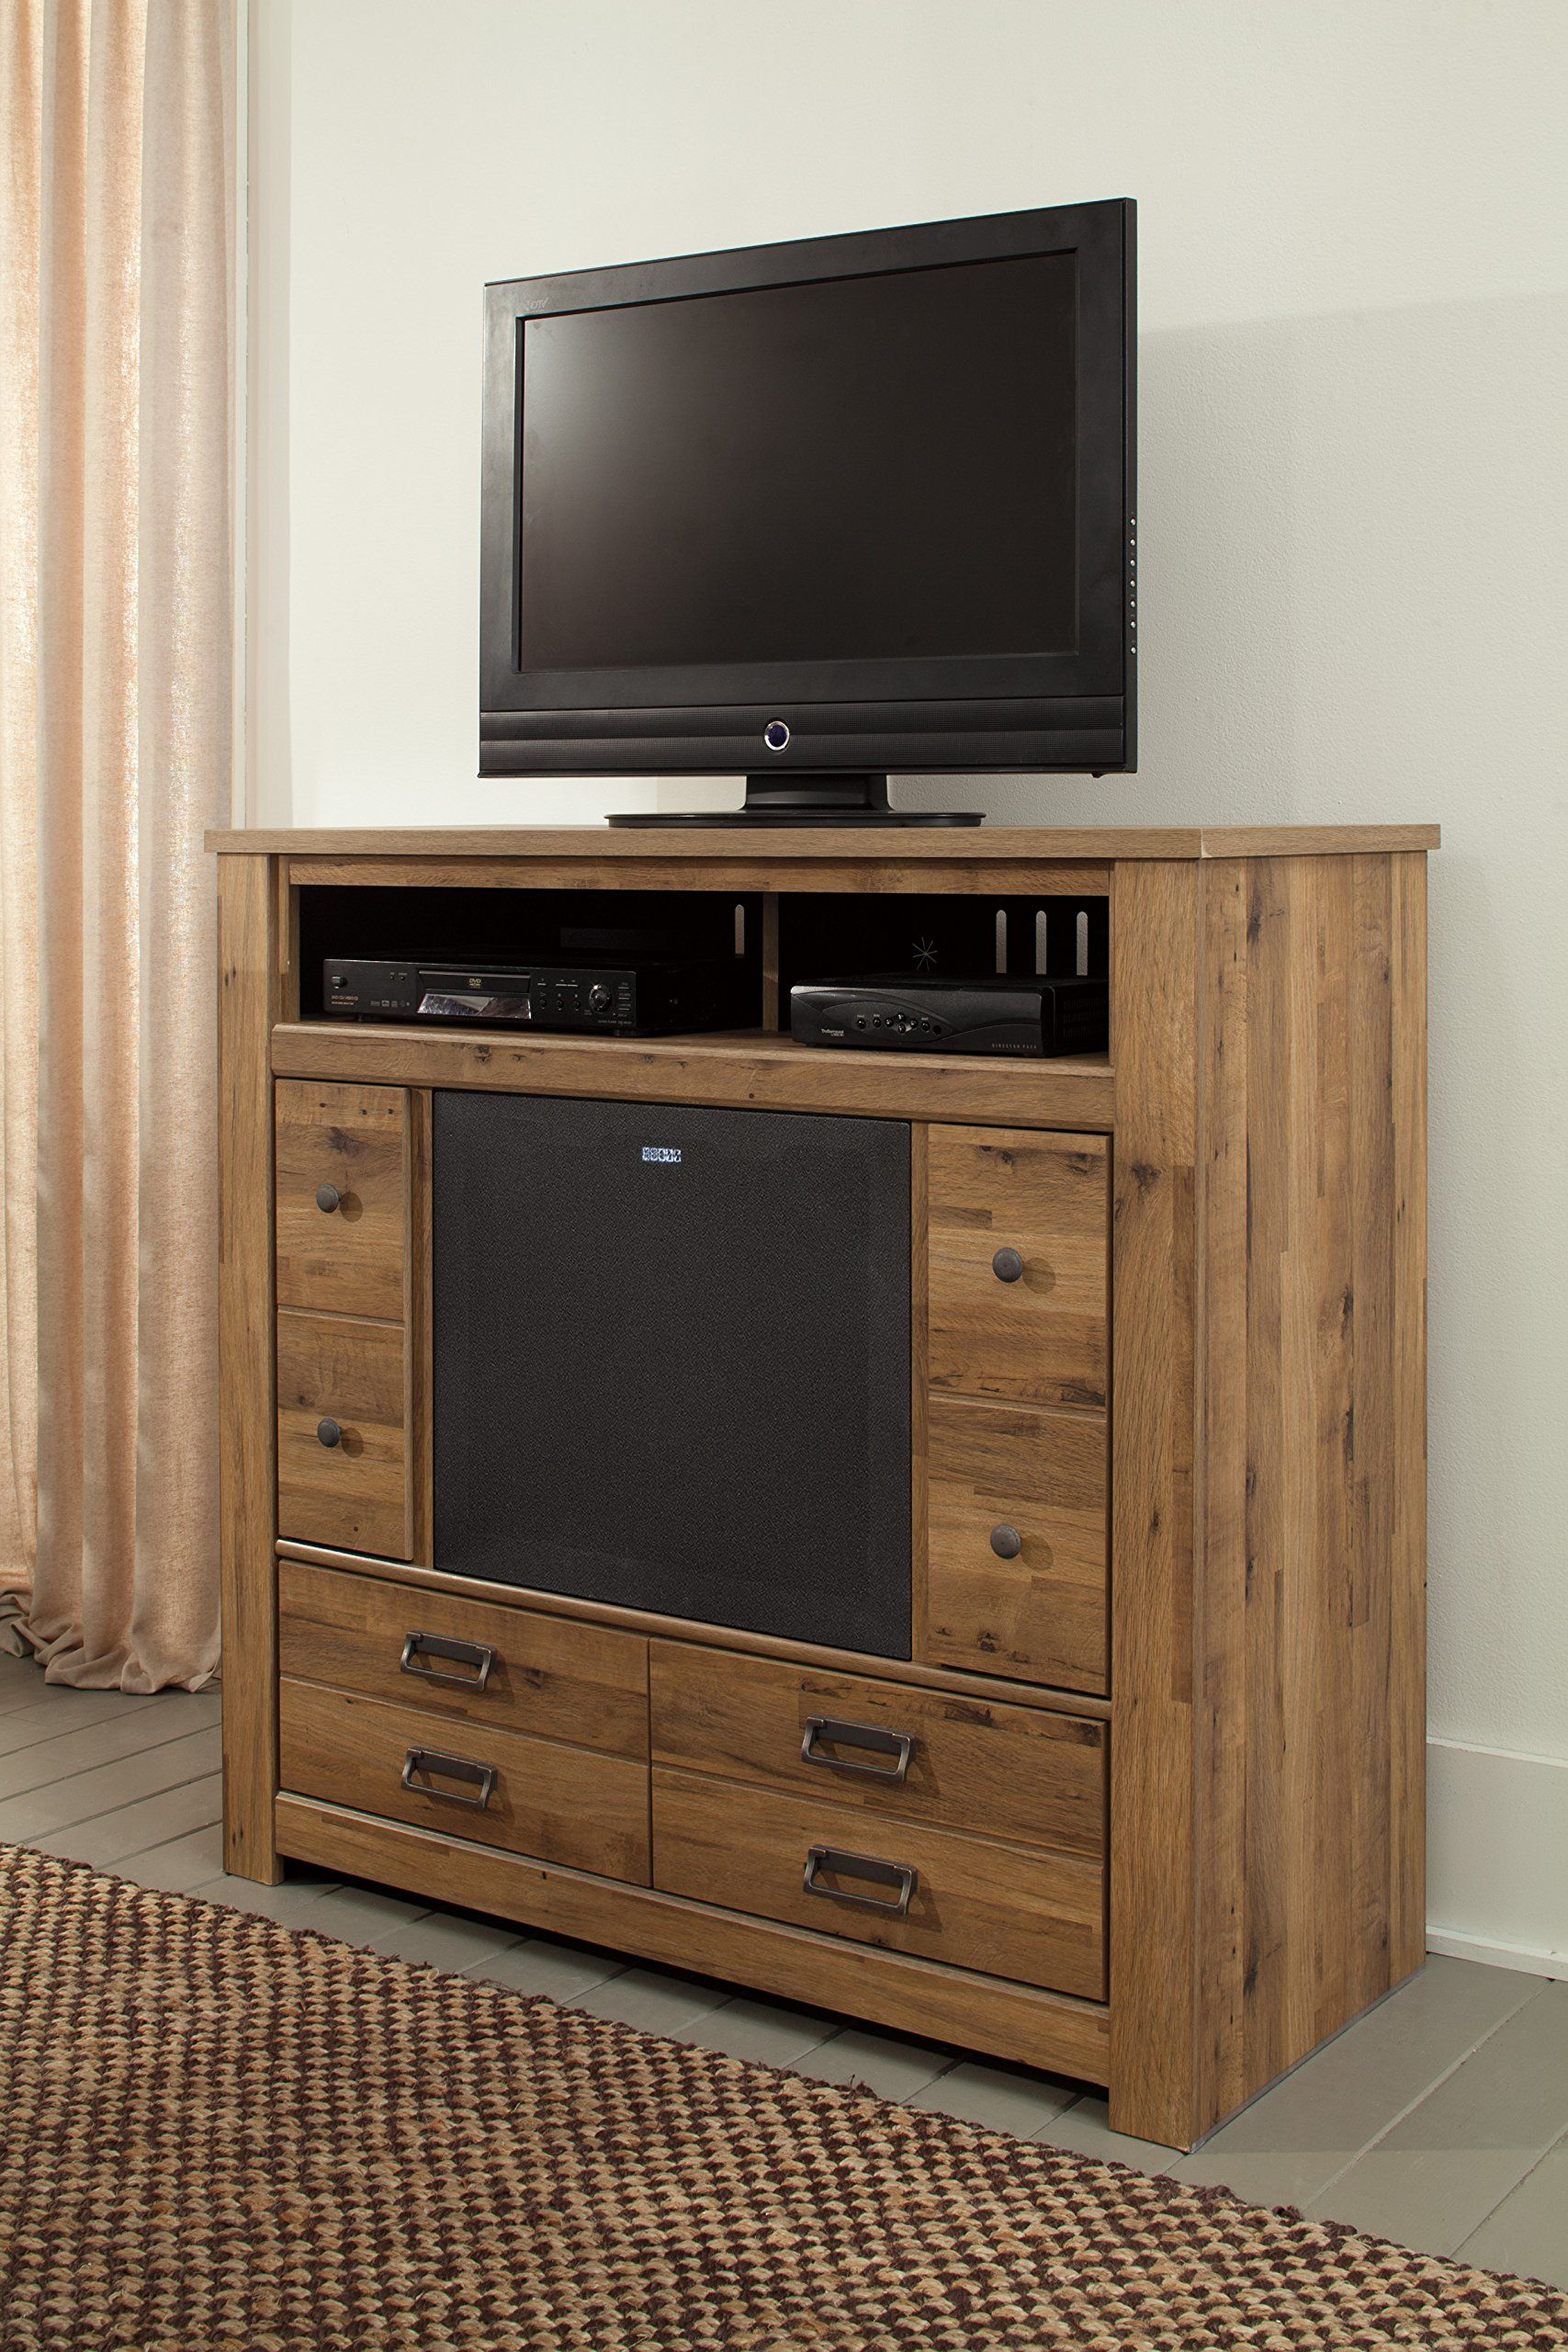 kitchen furniture porter ashley com stand brown dp burnished amazon tv home cupboard stands finish large